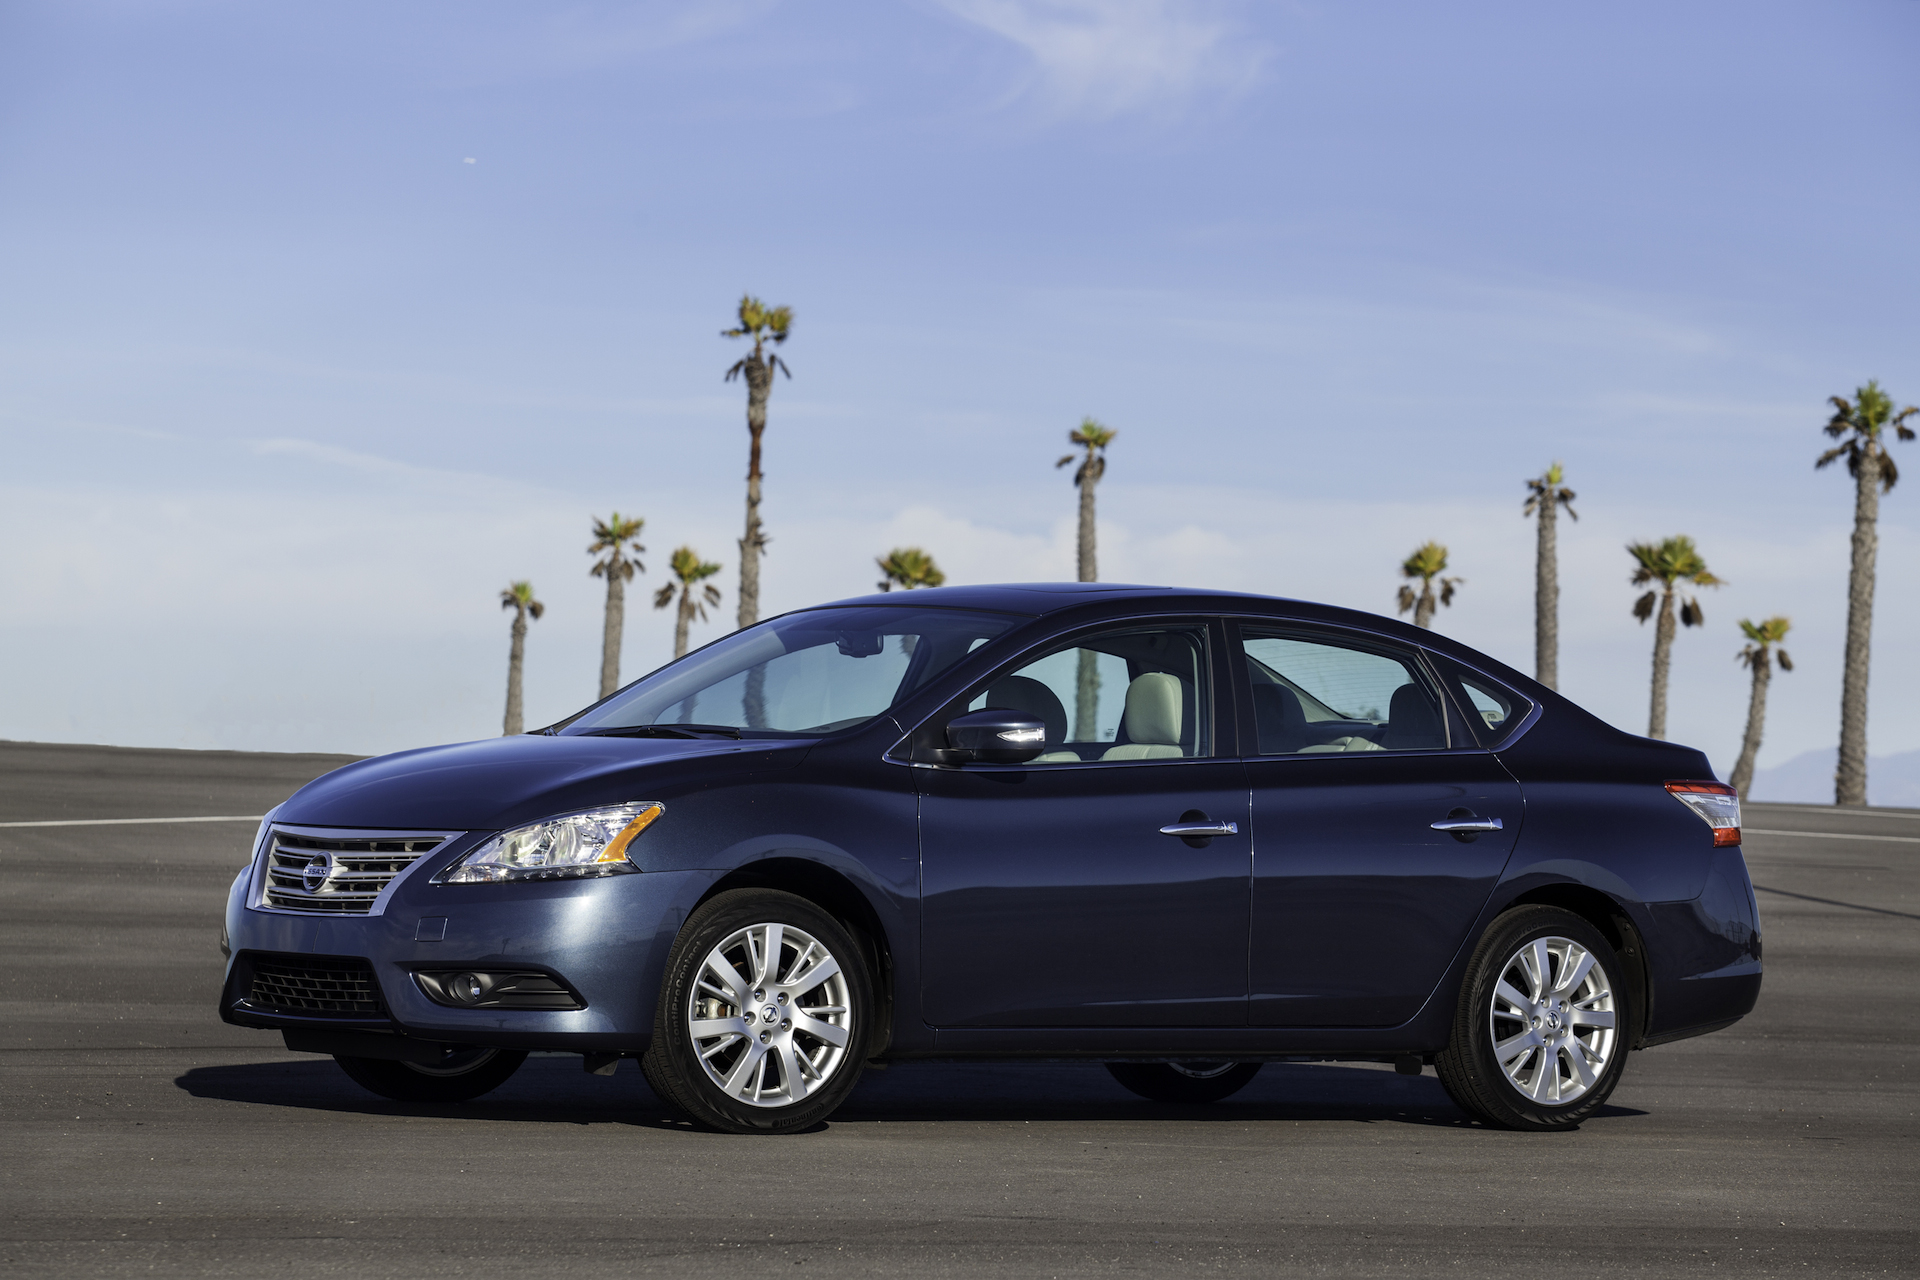 2015 Nissan Sentra Review, Ratings, Specs, Prices, and Photos - The ...